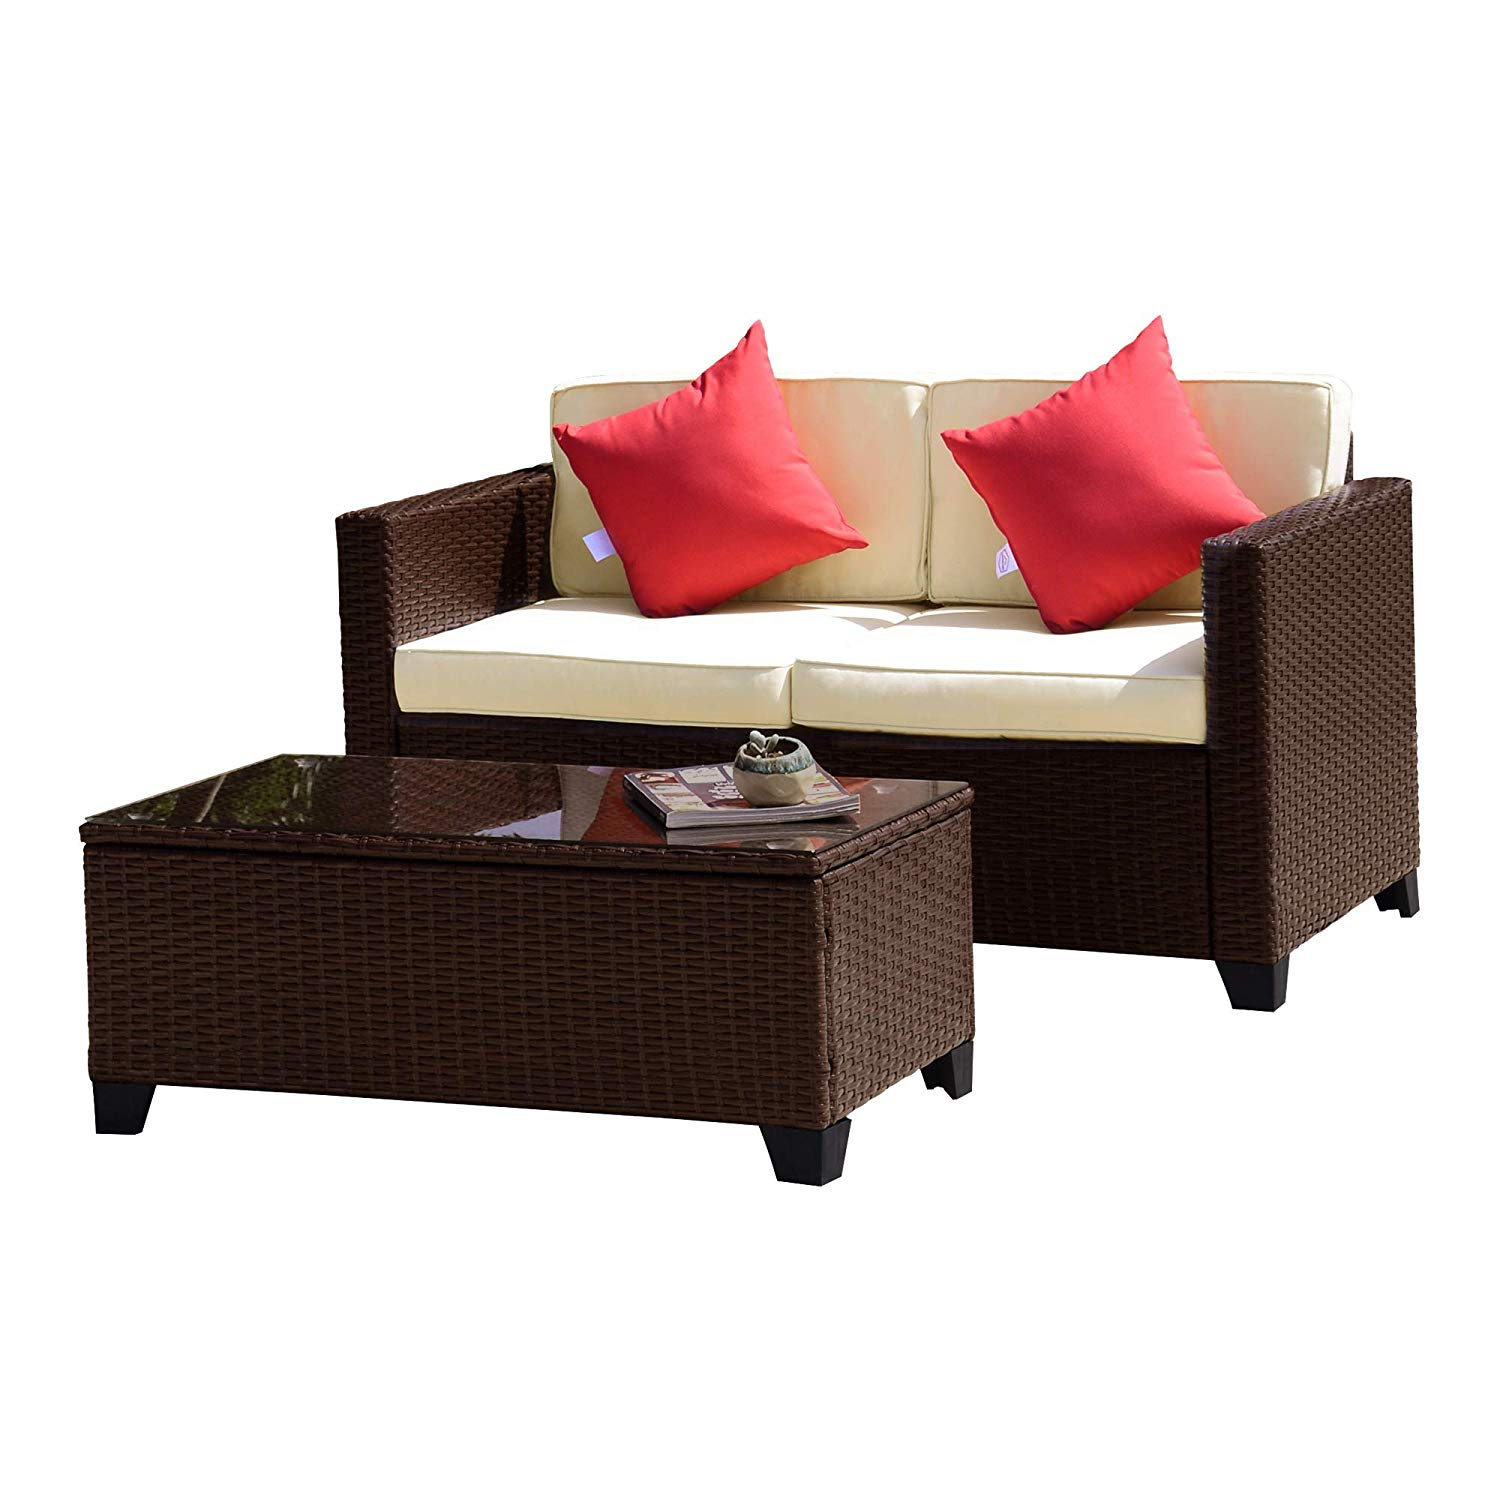 FurniTure Outdoor Wicker Love Seat Set 2 PC Patio Rattan Set Garden Rattan Wicker Sofa Set Table Seat, Cocoa Brown Wicker with Beige Cushions